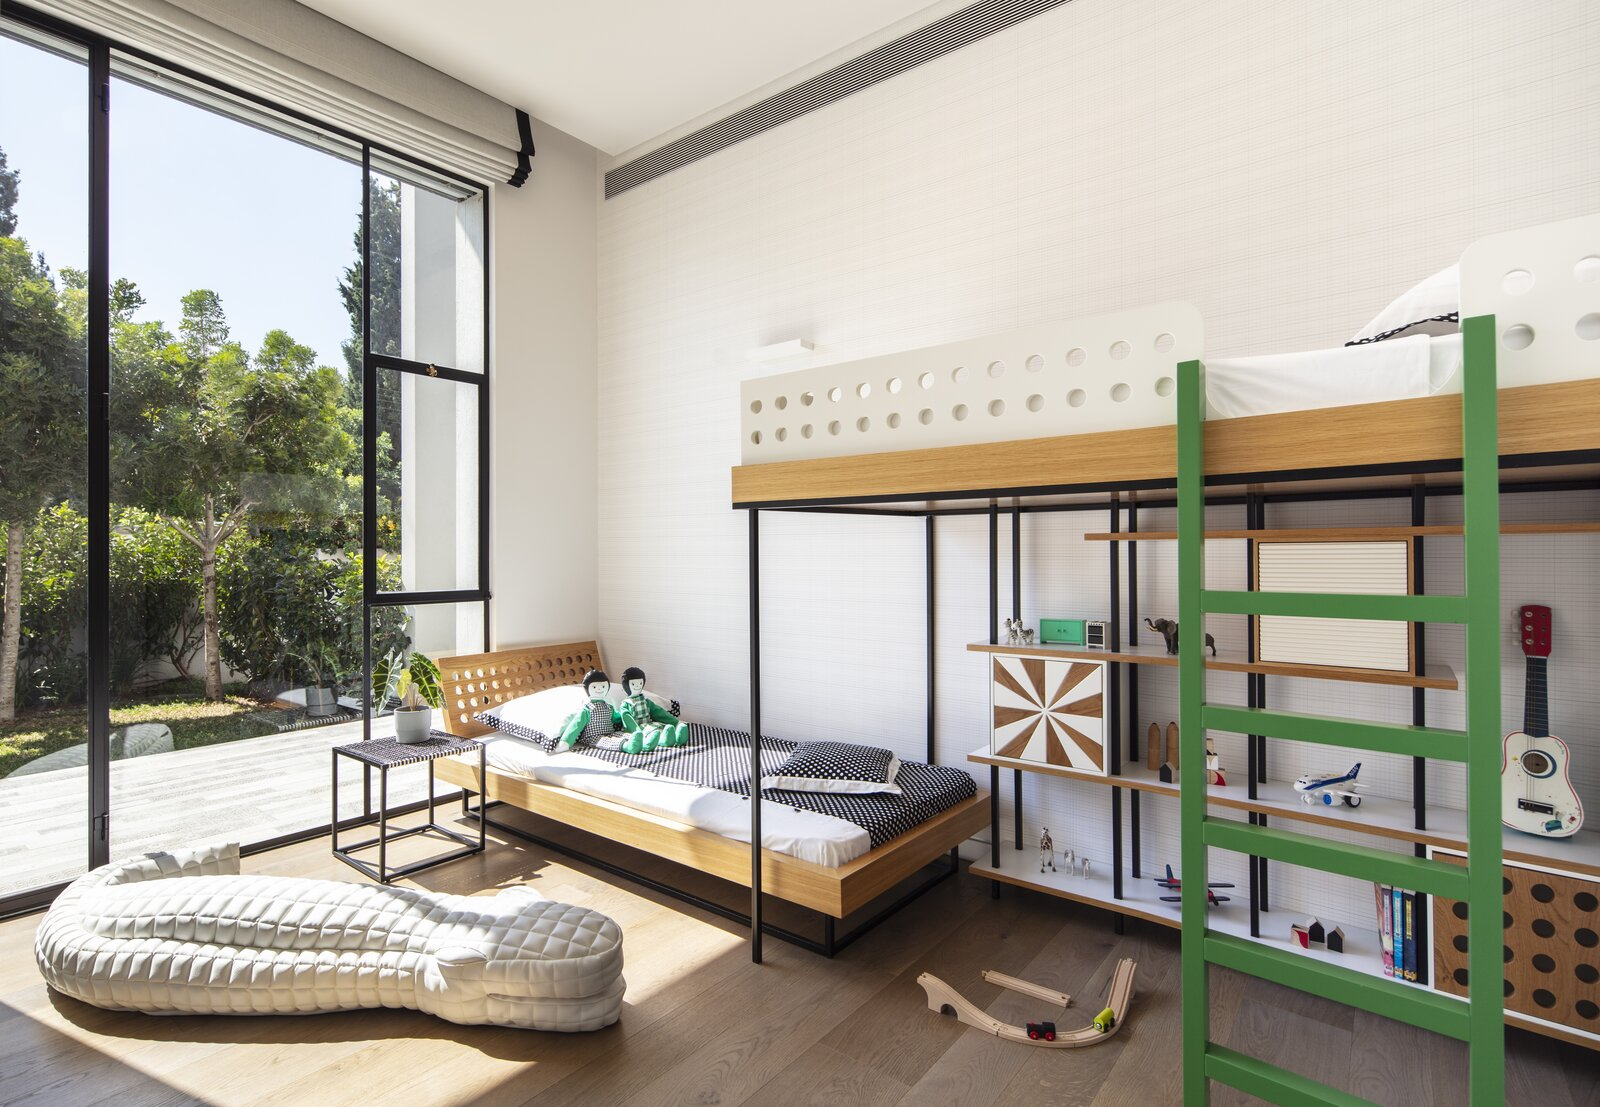 In Herzliya, a suburb of Tel Aviv, designer Sarit Shani Hay created a bedroom for two boys aged three and six. The two beds, arranged at staggered heights, provide the benefits of a bunk bed while allowing storage space.  Photo 1 of 13 in How to Design a Room That Grows Up With Your Kids